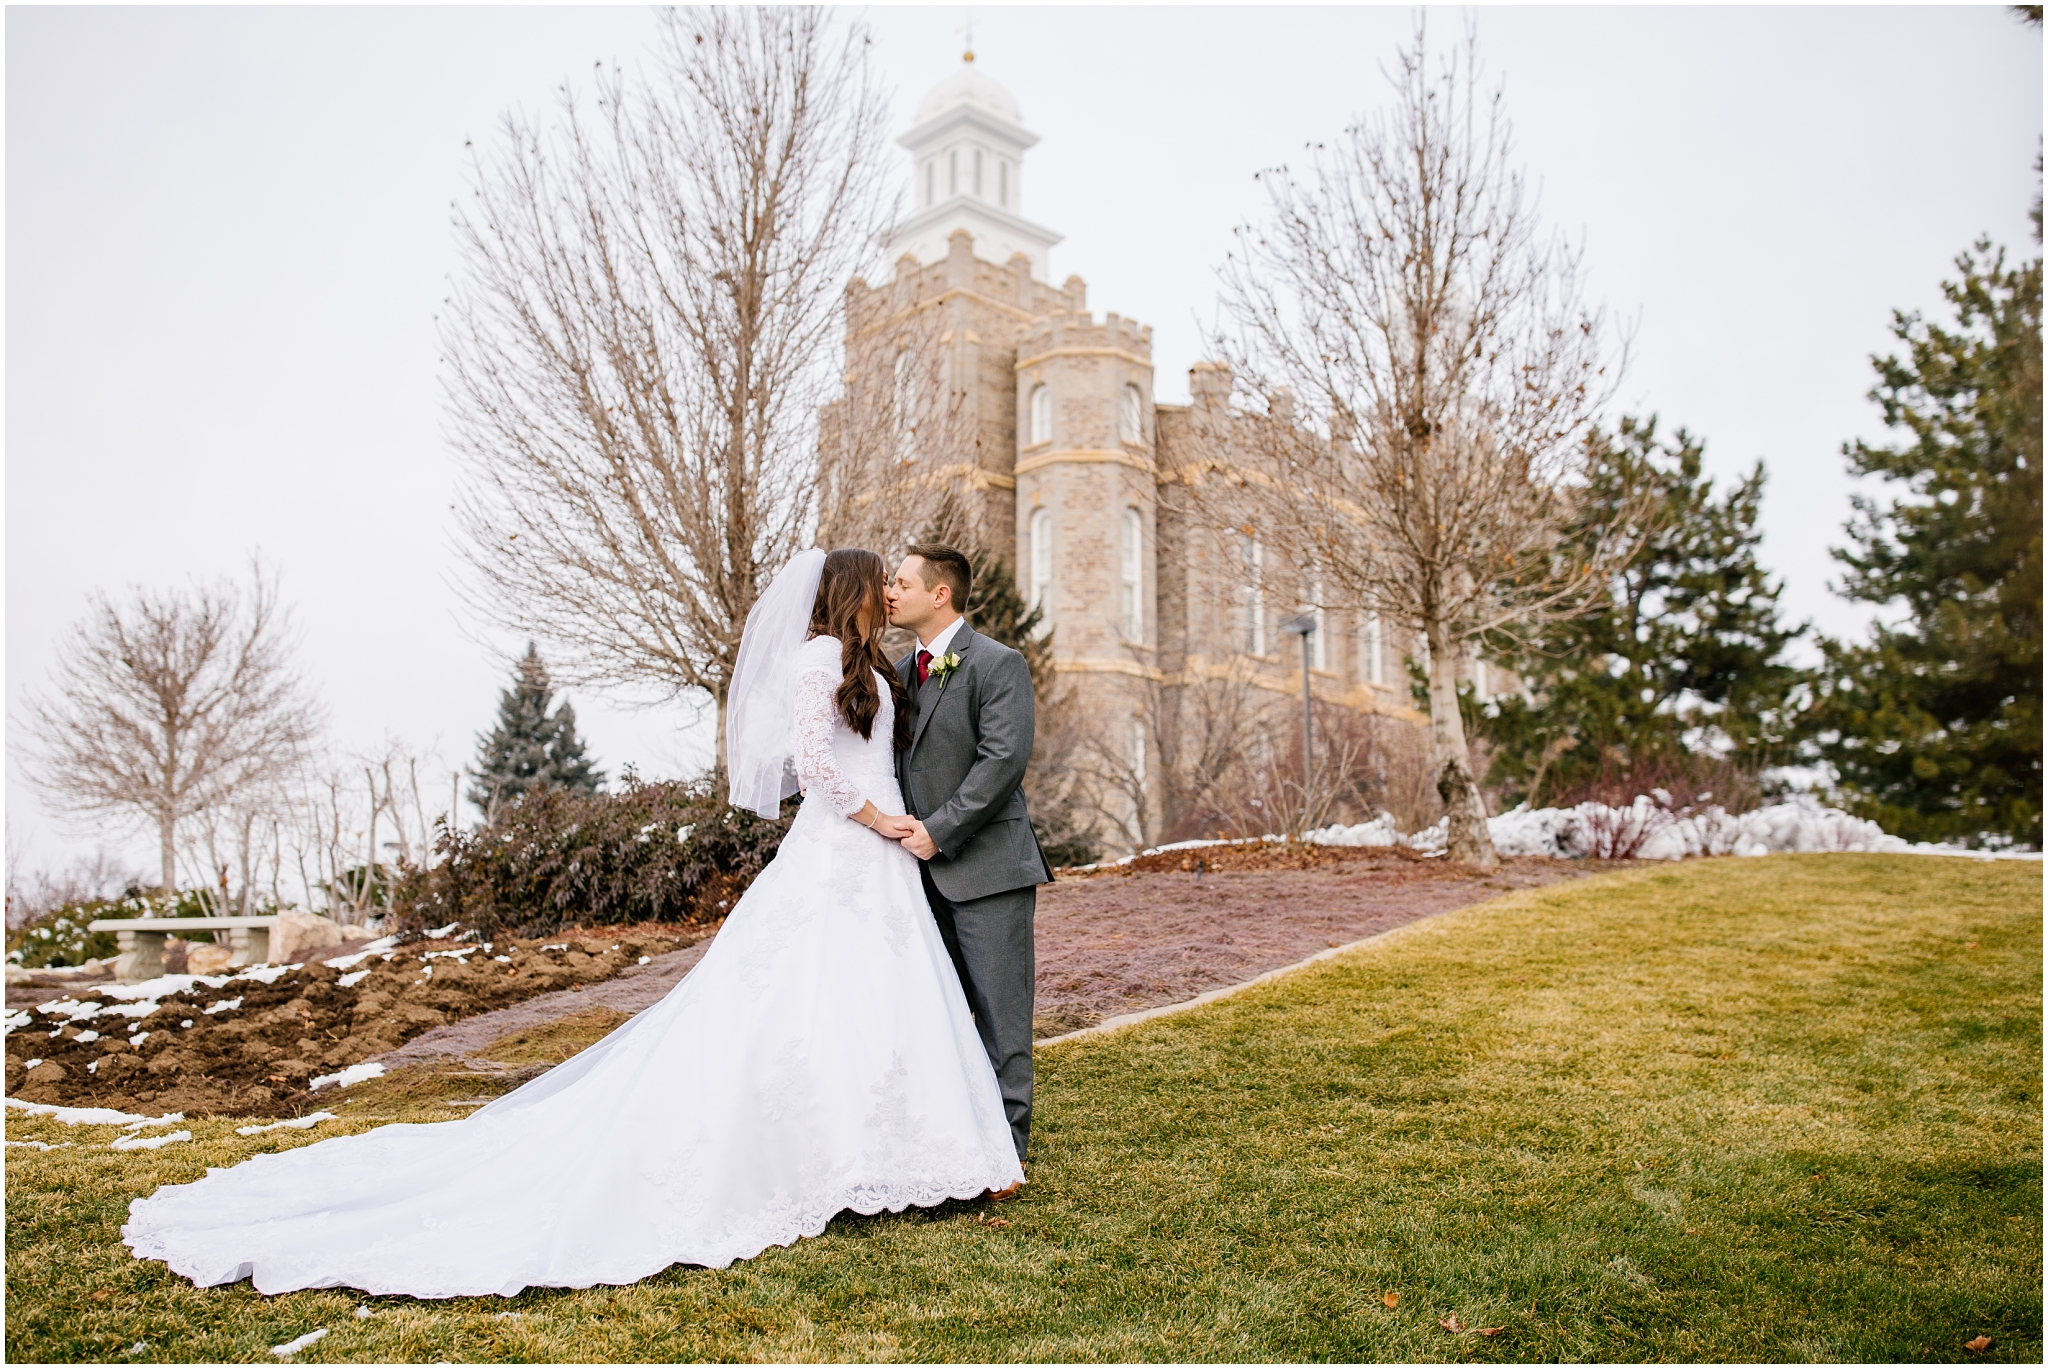 SSBridals-97_Lizzie-B-Imagery-Utah-Wedding-Photographer-Salt-Lake-City-Park-City-Logan-Utah-Temple.jpg